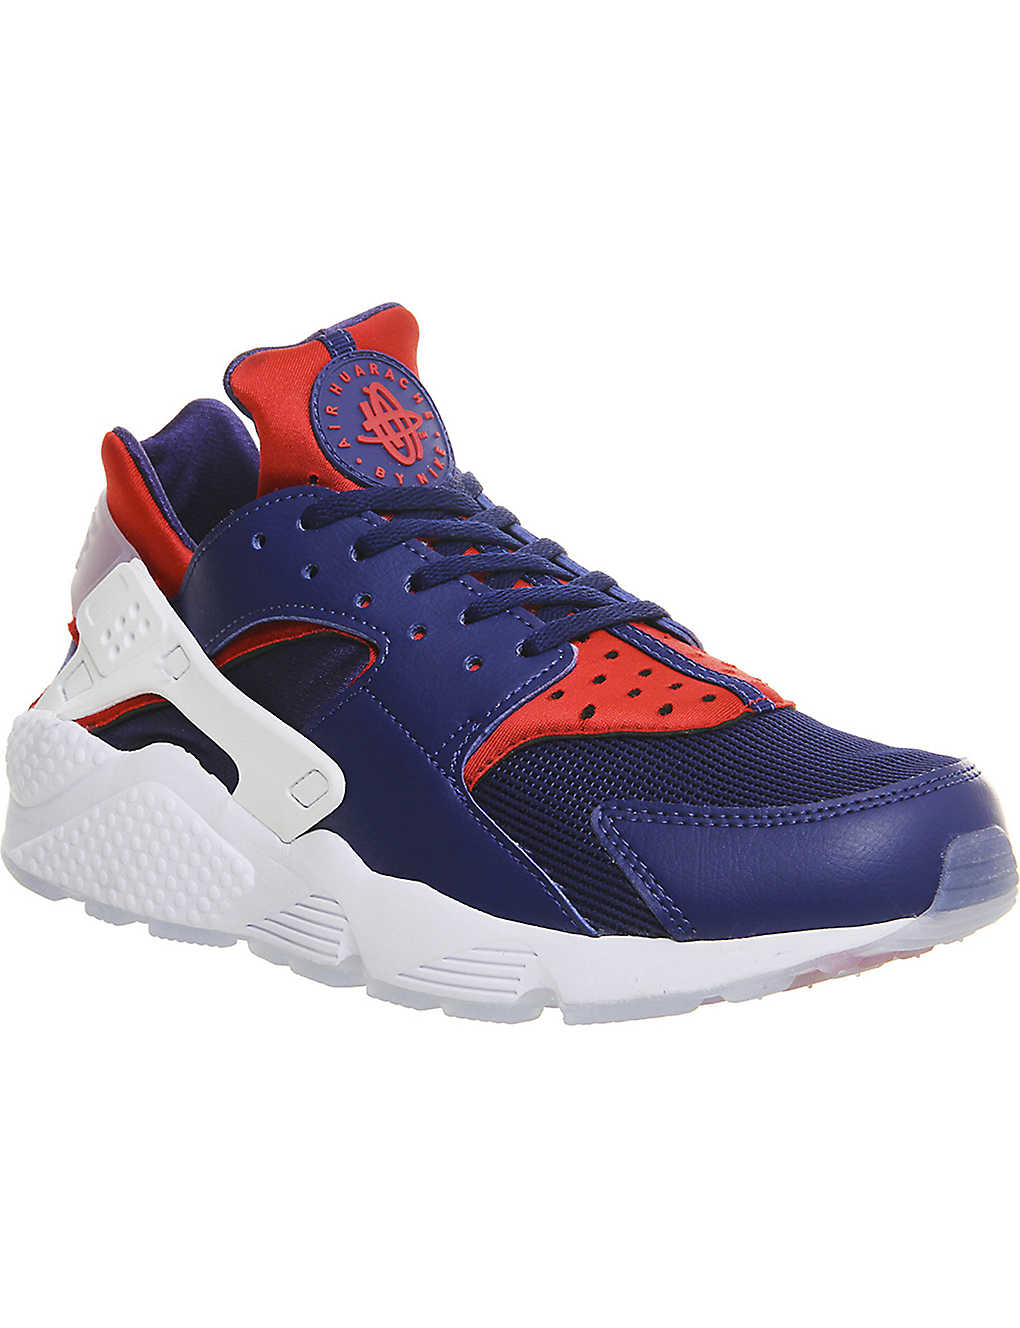 NIKE - Nike Air Huarache City Pack London trainers  ef8f1e1f5